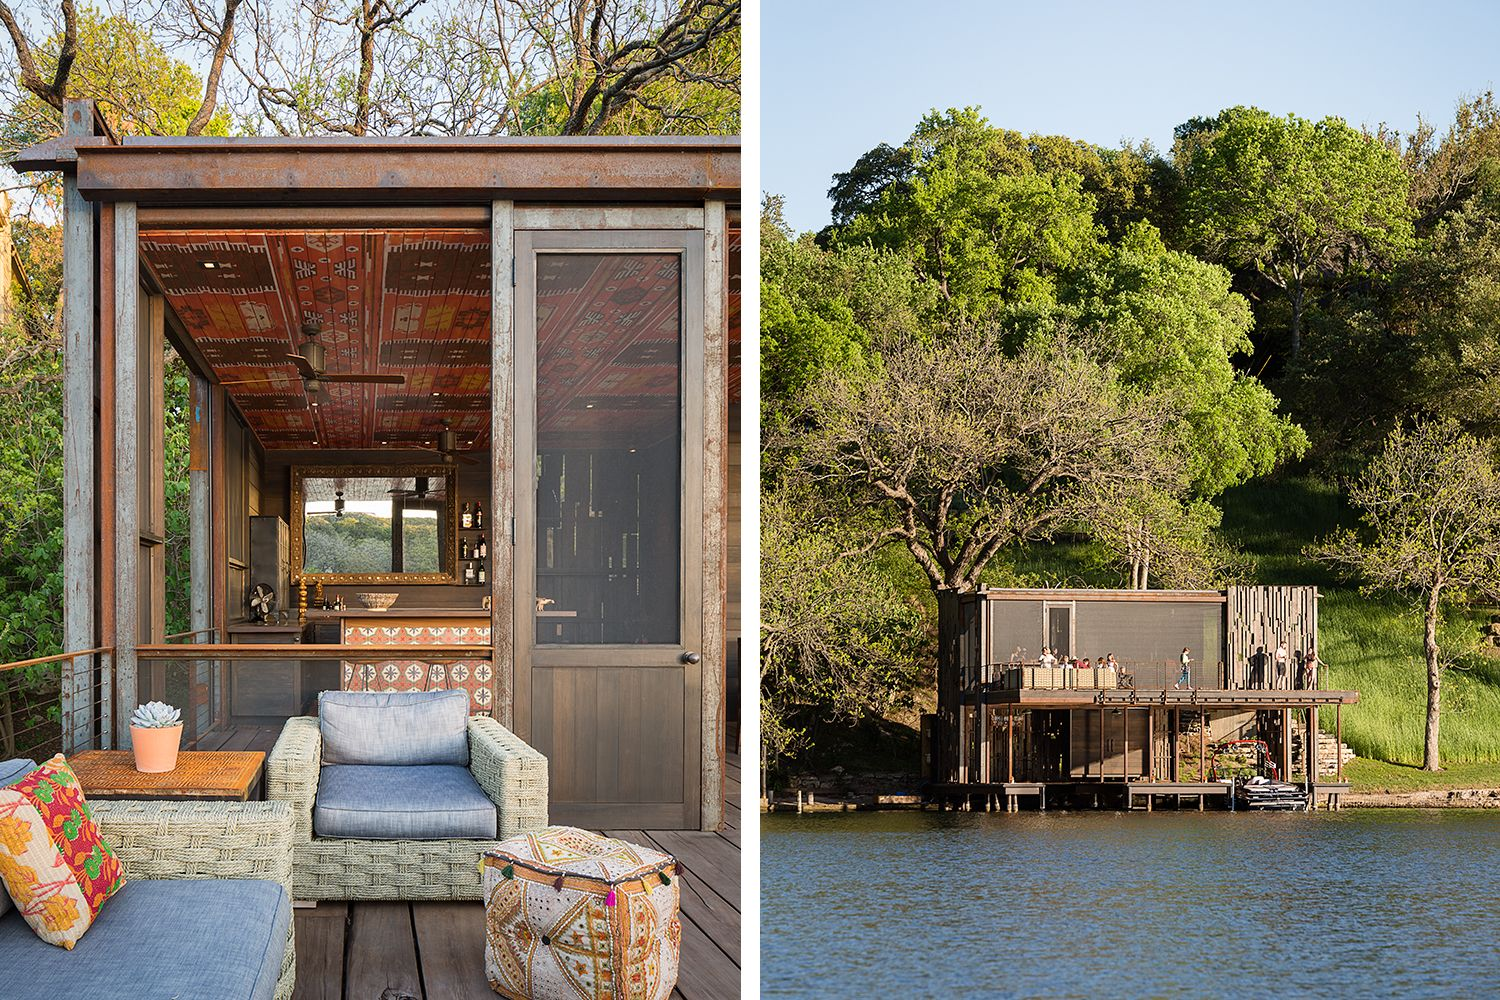 bunny run boat dock andersson wise architects - Boat Dock Design Ideas